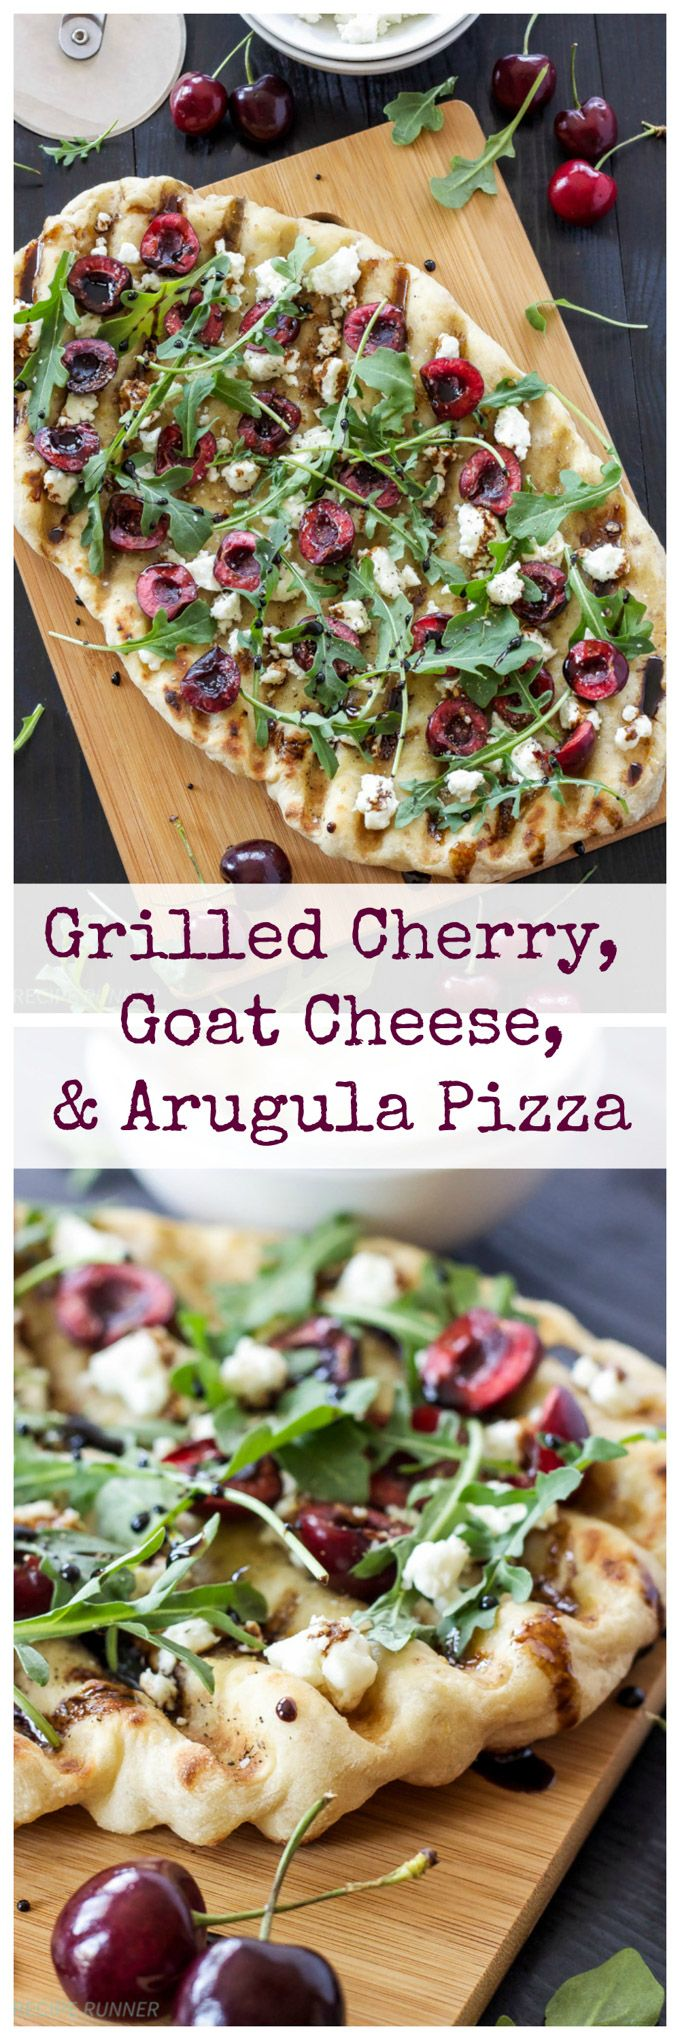 Grilled Cherry, Goat Cheese, and Arugula Pizza | Grilled pizza is perfect for summer and this cherry and goat cheese combination is delicious!